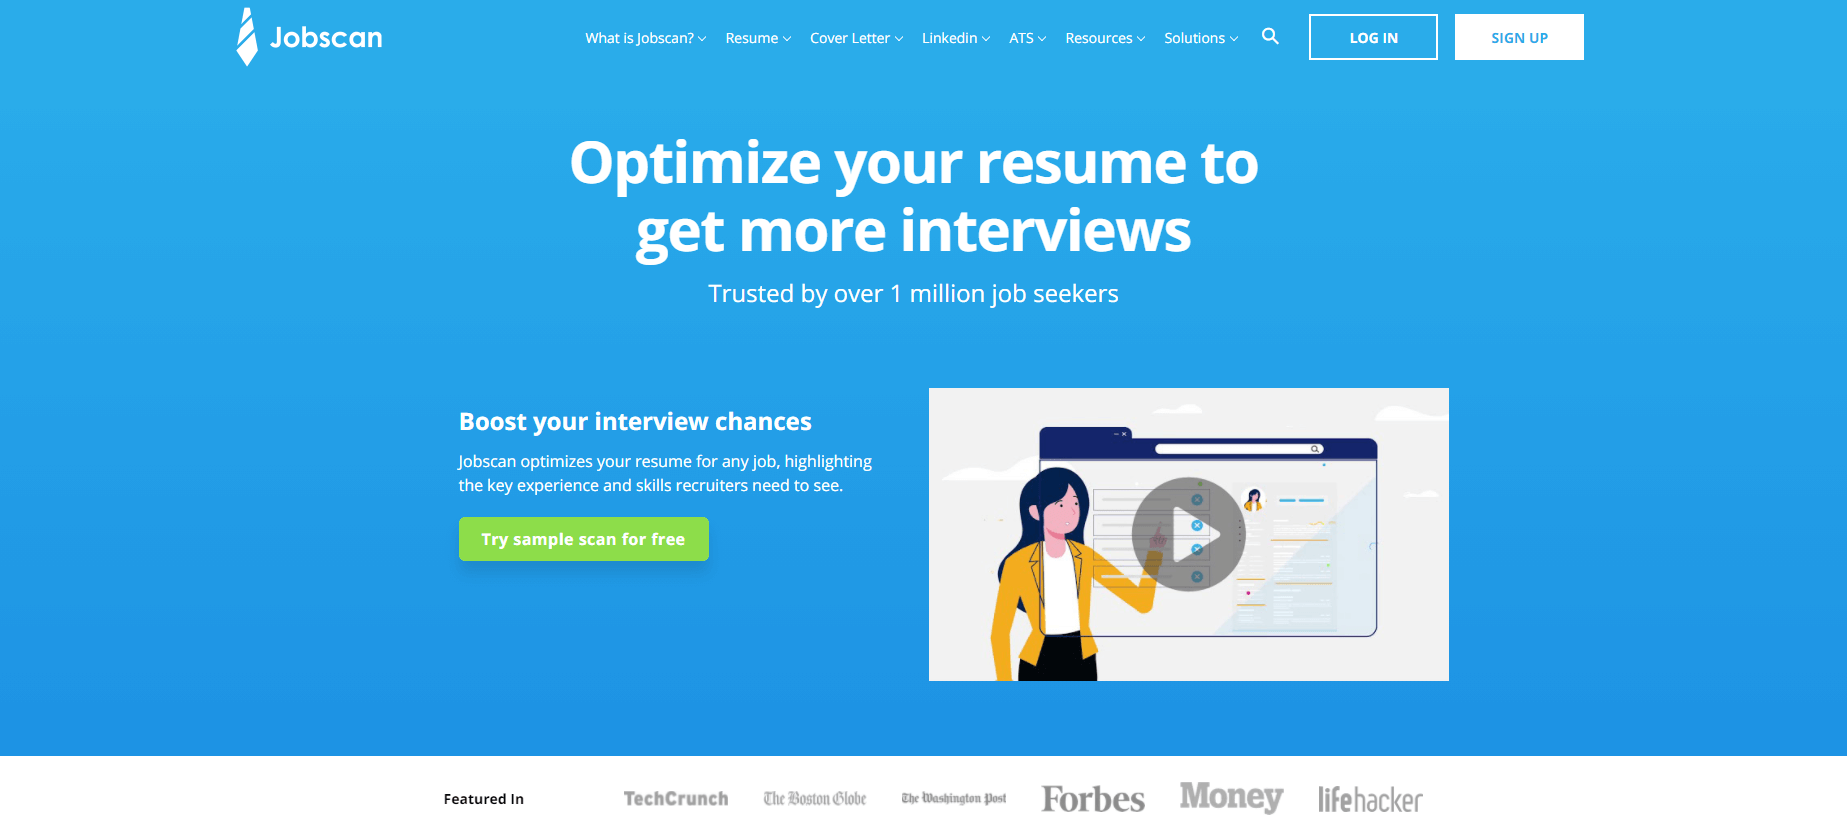 jobscan.co Review by TopResumeWritingServices